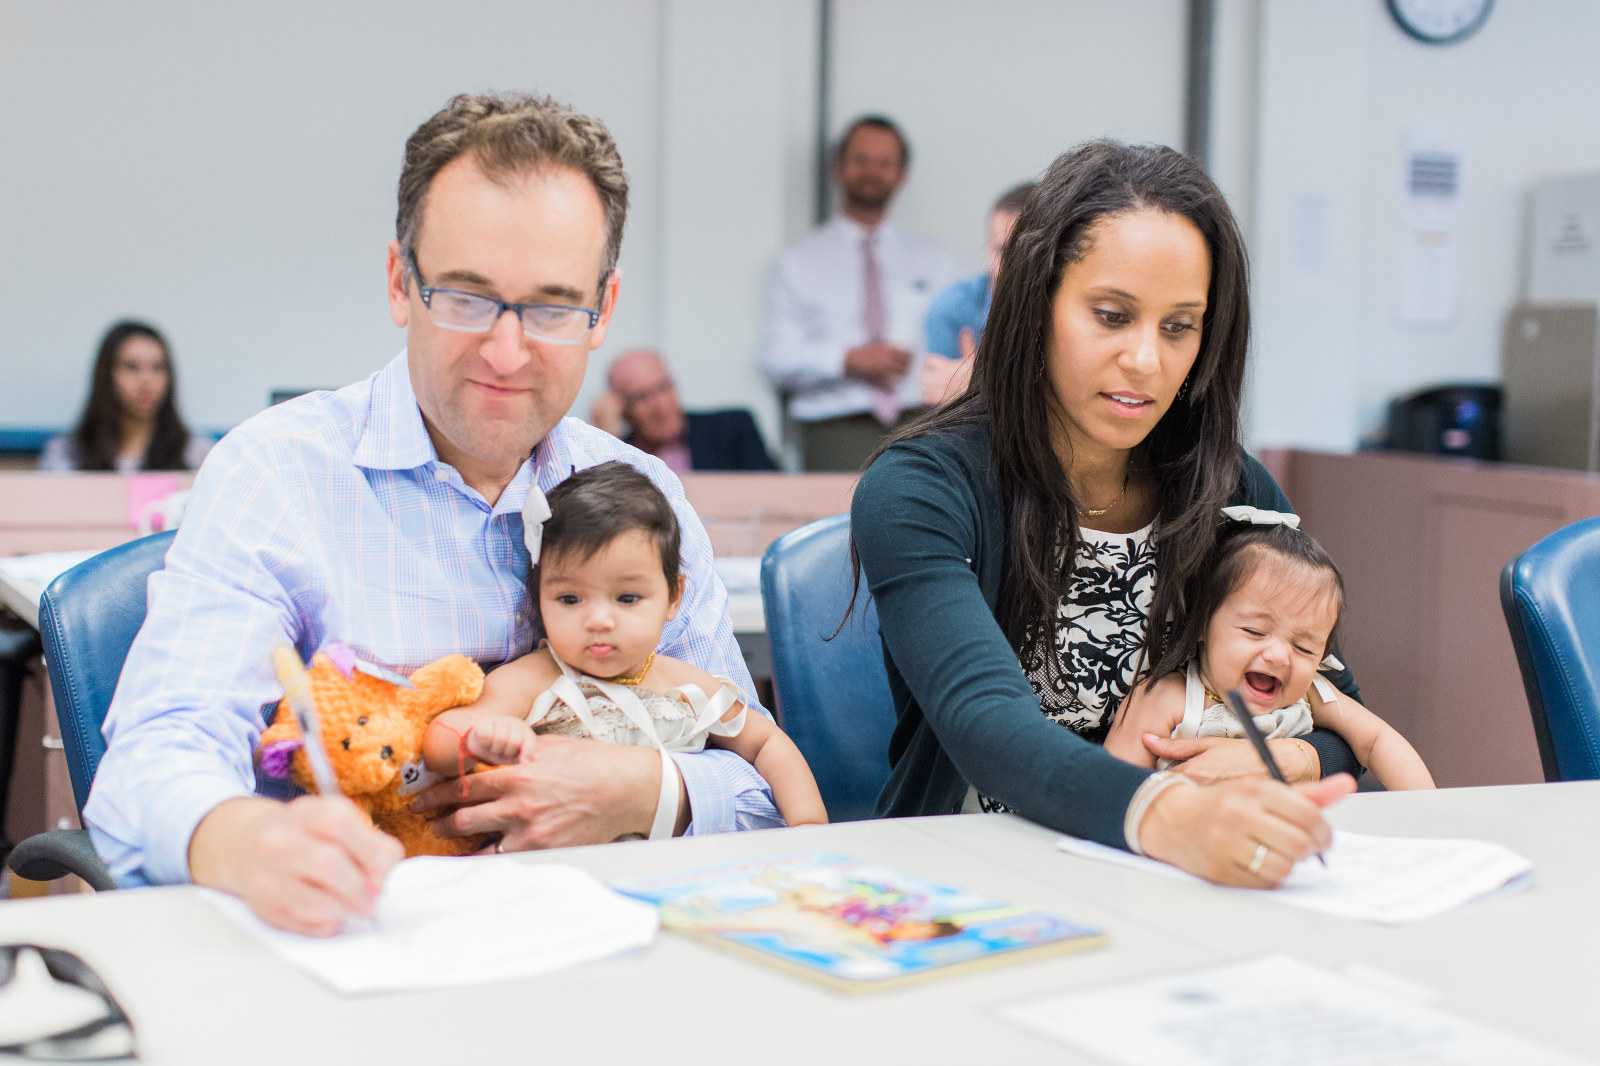 family signs adoption papers while holding babies - charitable adoption photography